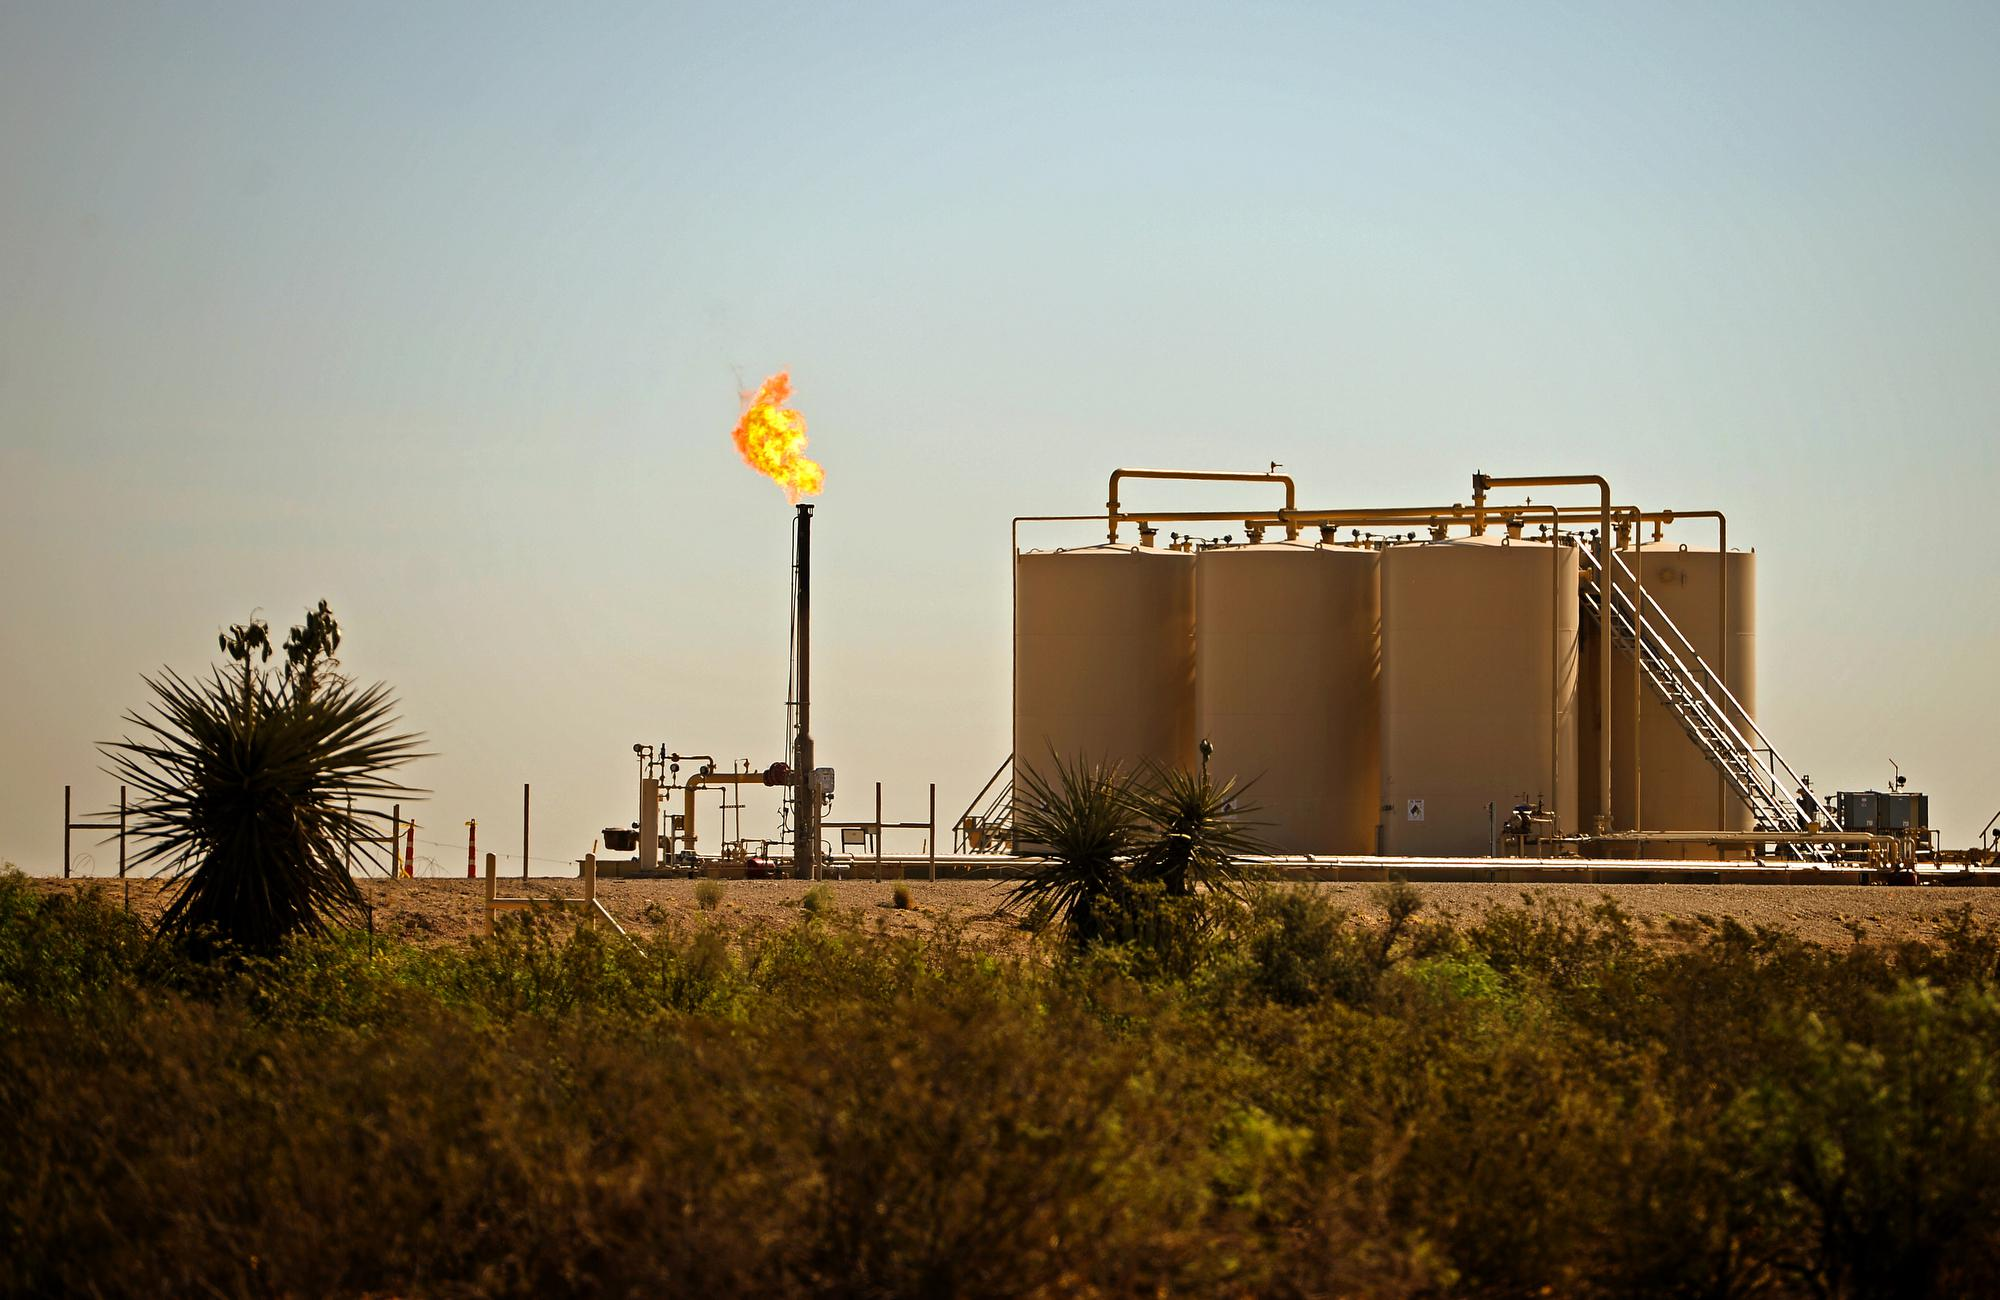 Study: Fracking responsible for rising methane levels in atmosphere